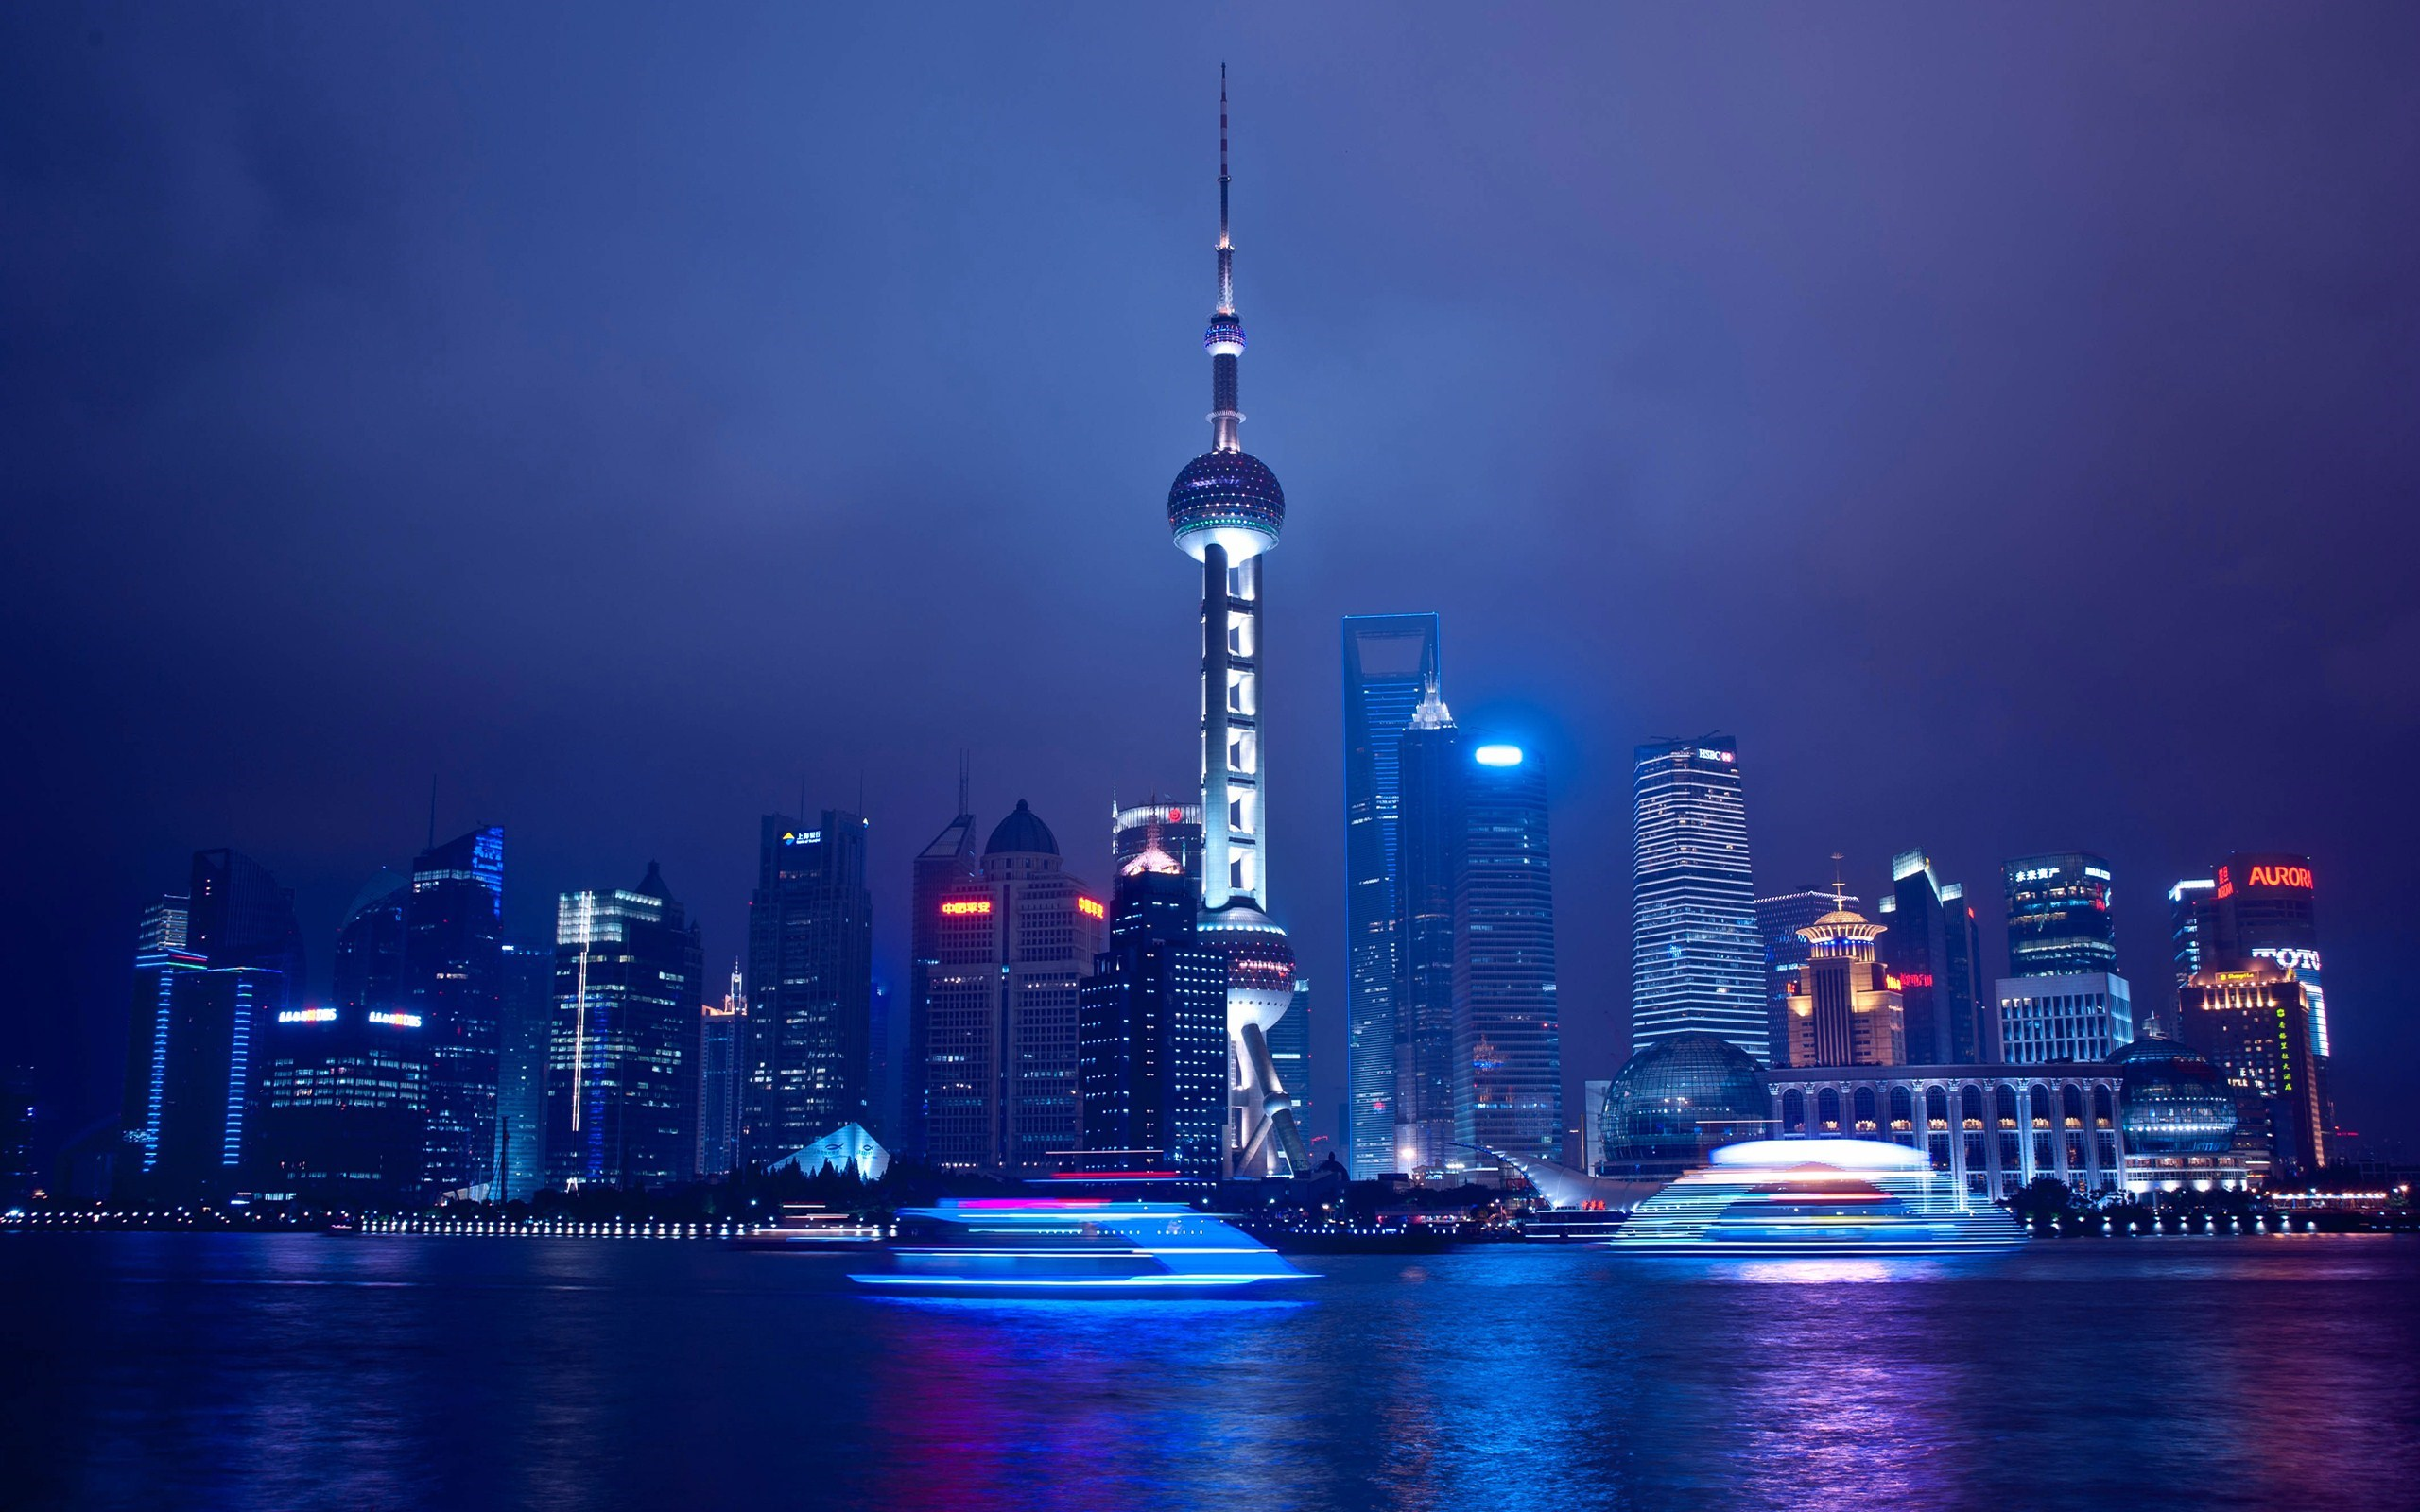 6980285-shanghai-china-city-the-oriental-pearl-tower-night